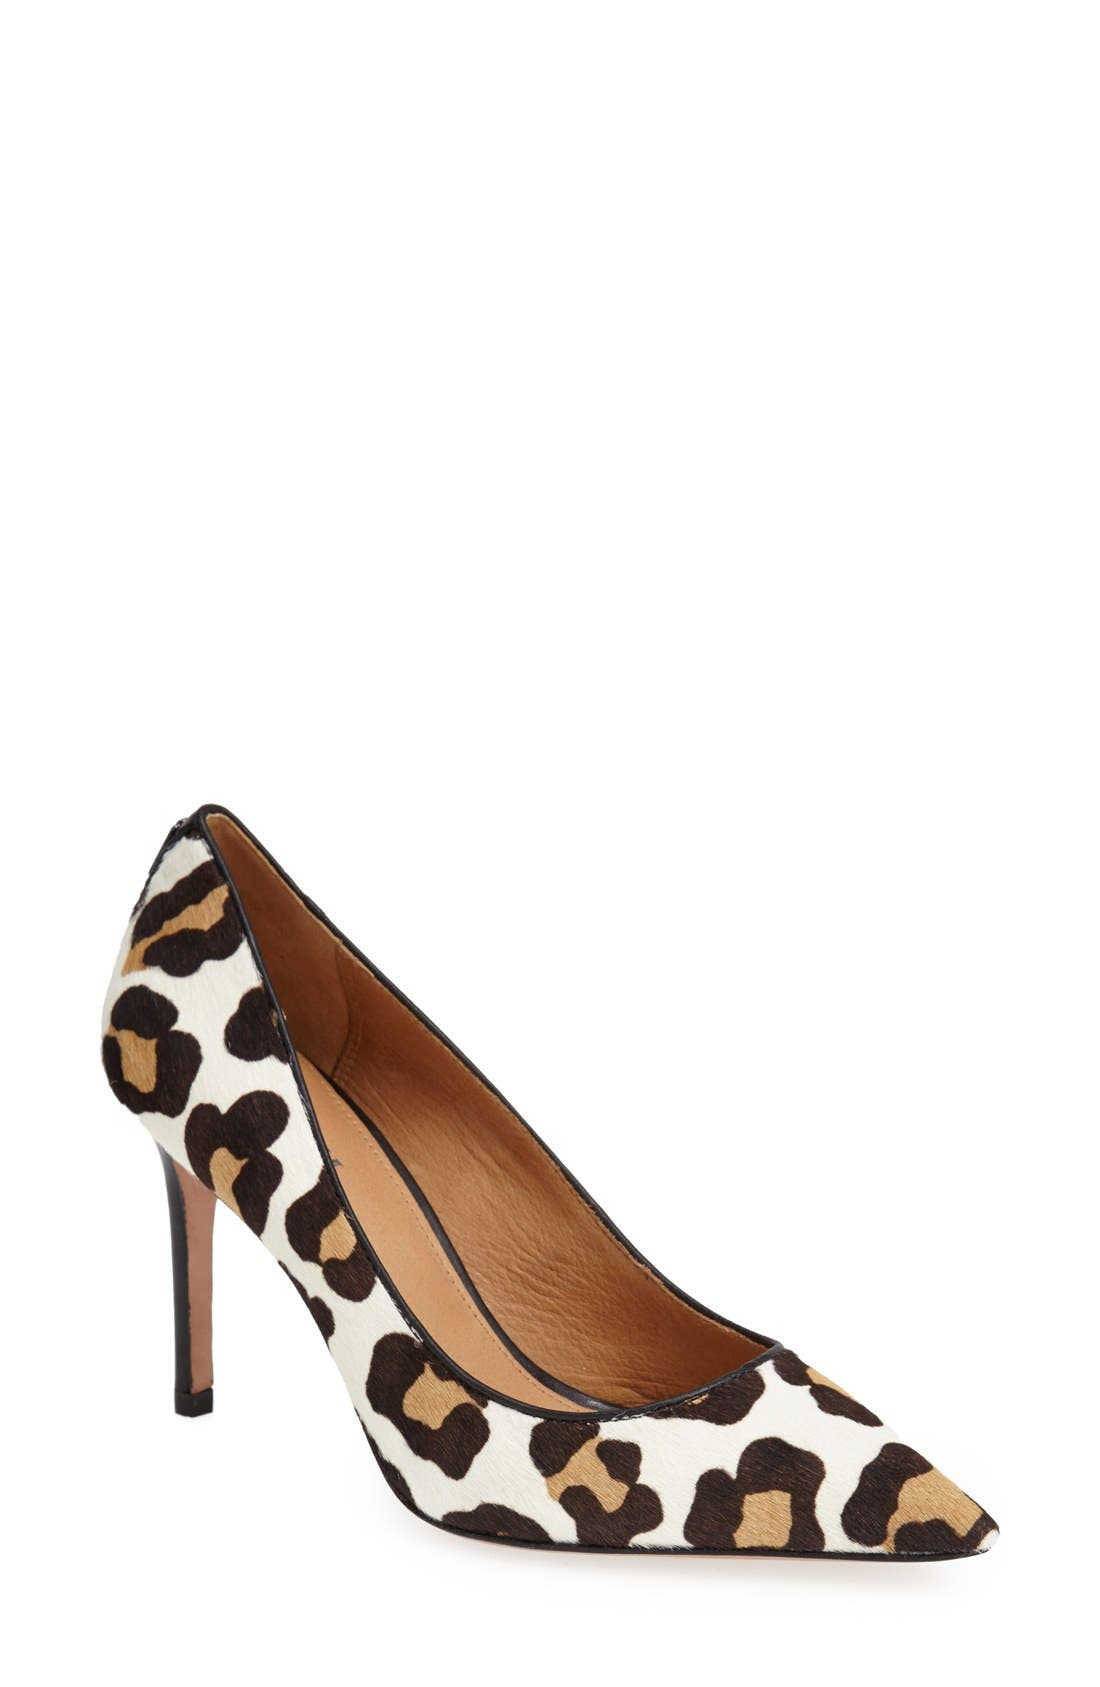 Main Image - COACH 'Teddie' Pump (Women)